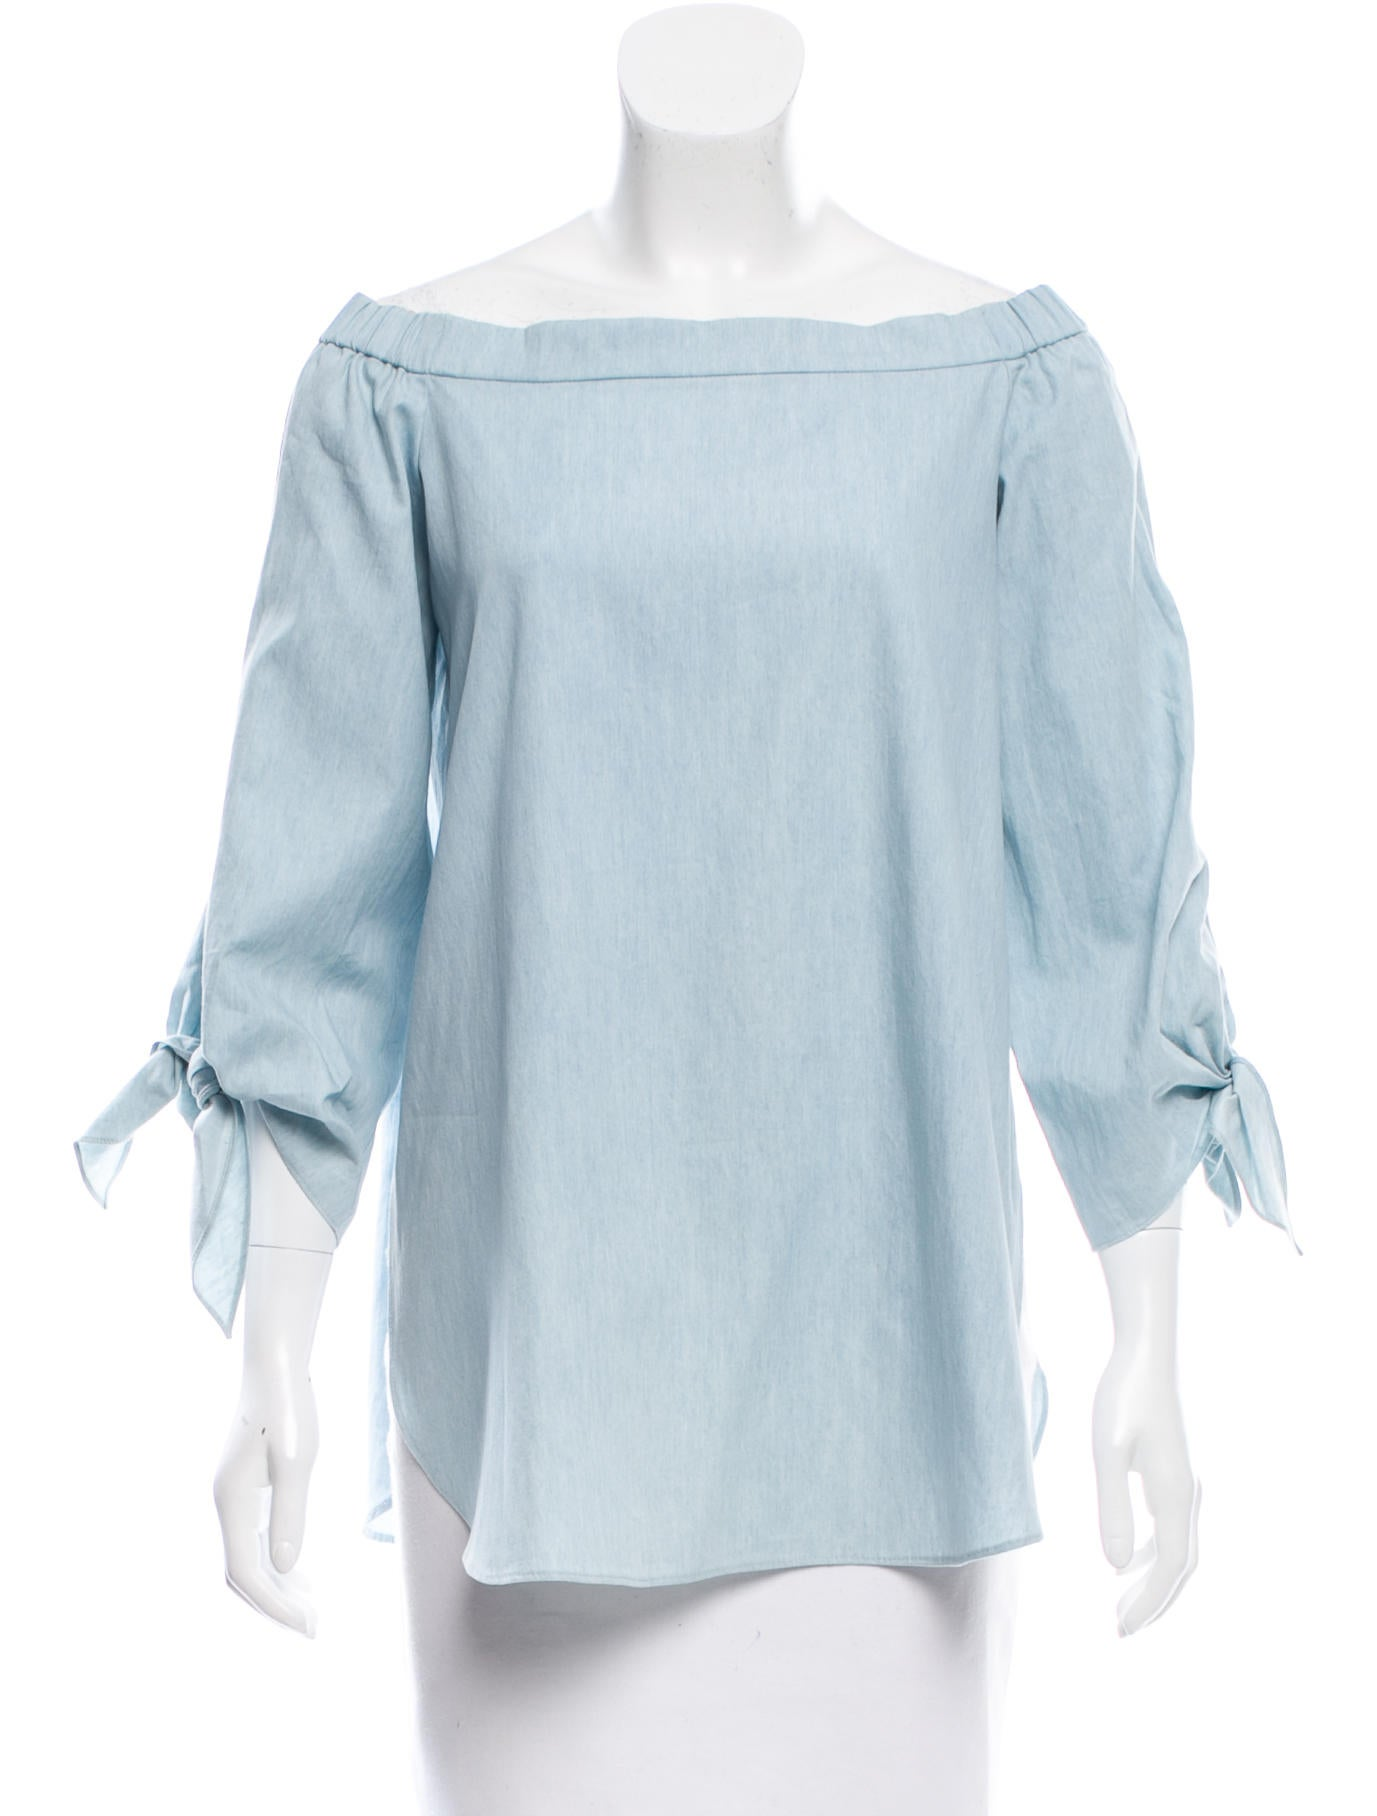 Tibi off the shoulder chambray top clothing wti34625 for Chambray top